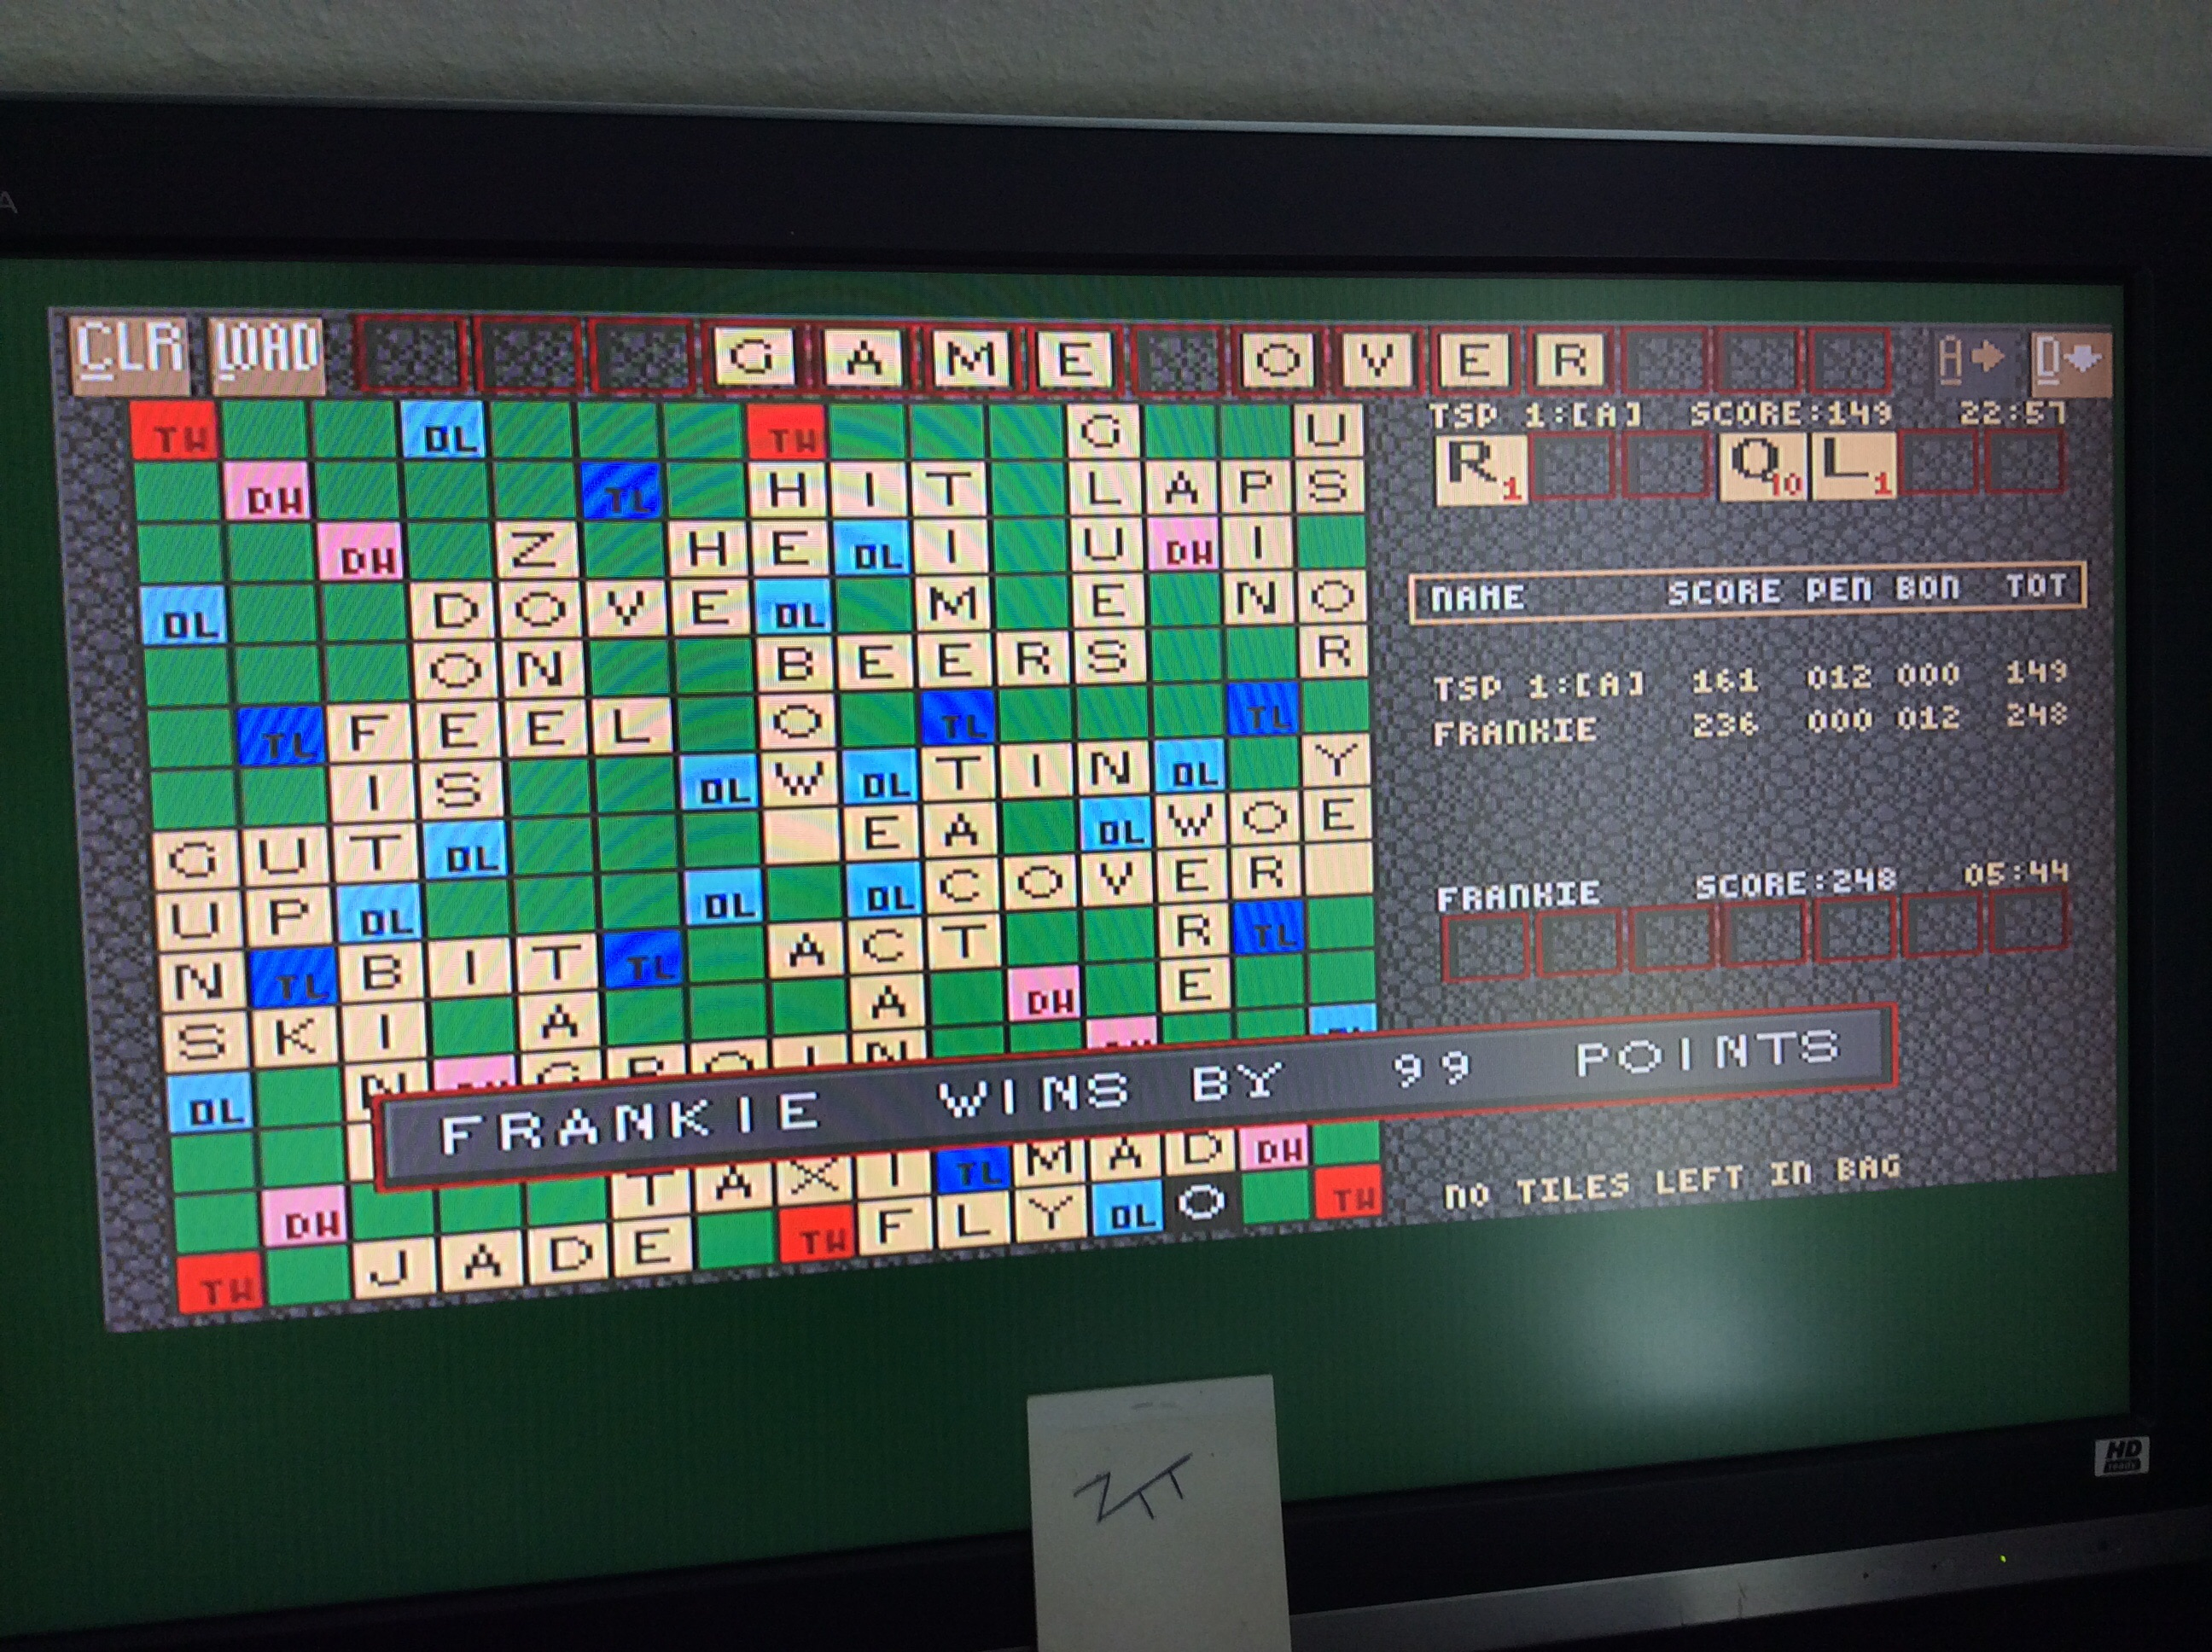 Frankie: Scrabble [TSP Level: A][U.S. Gold] (Amiga) 99 points on 2016-10-27 05:50:03